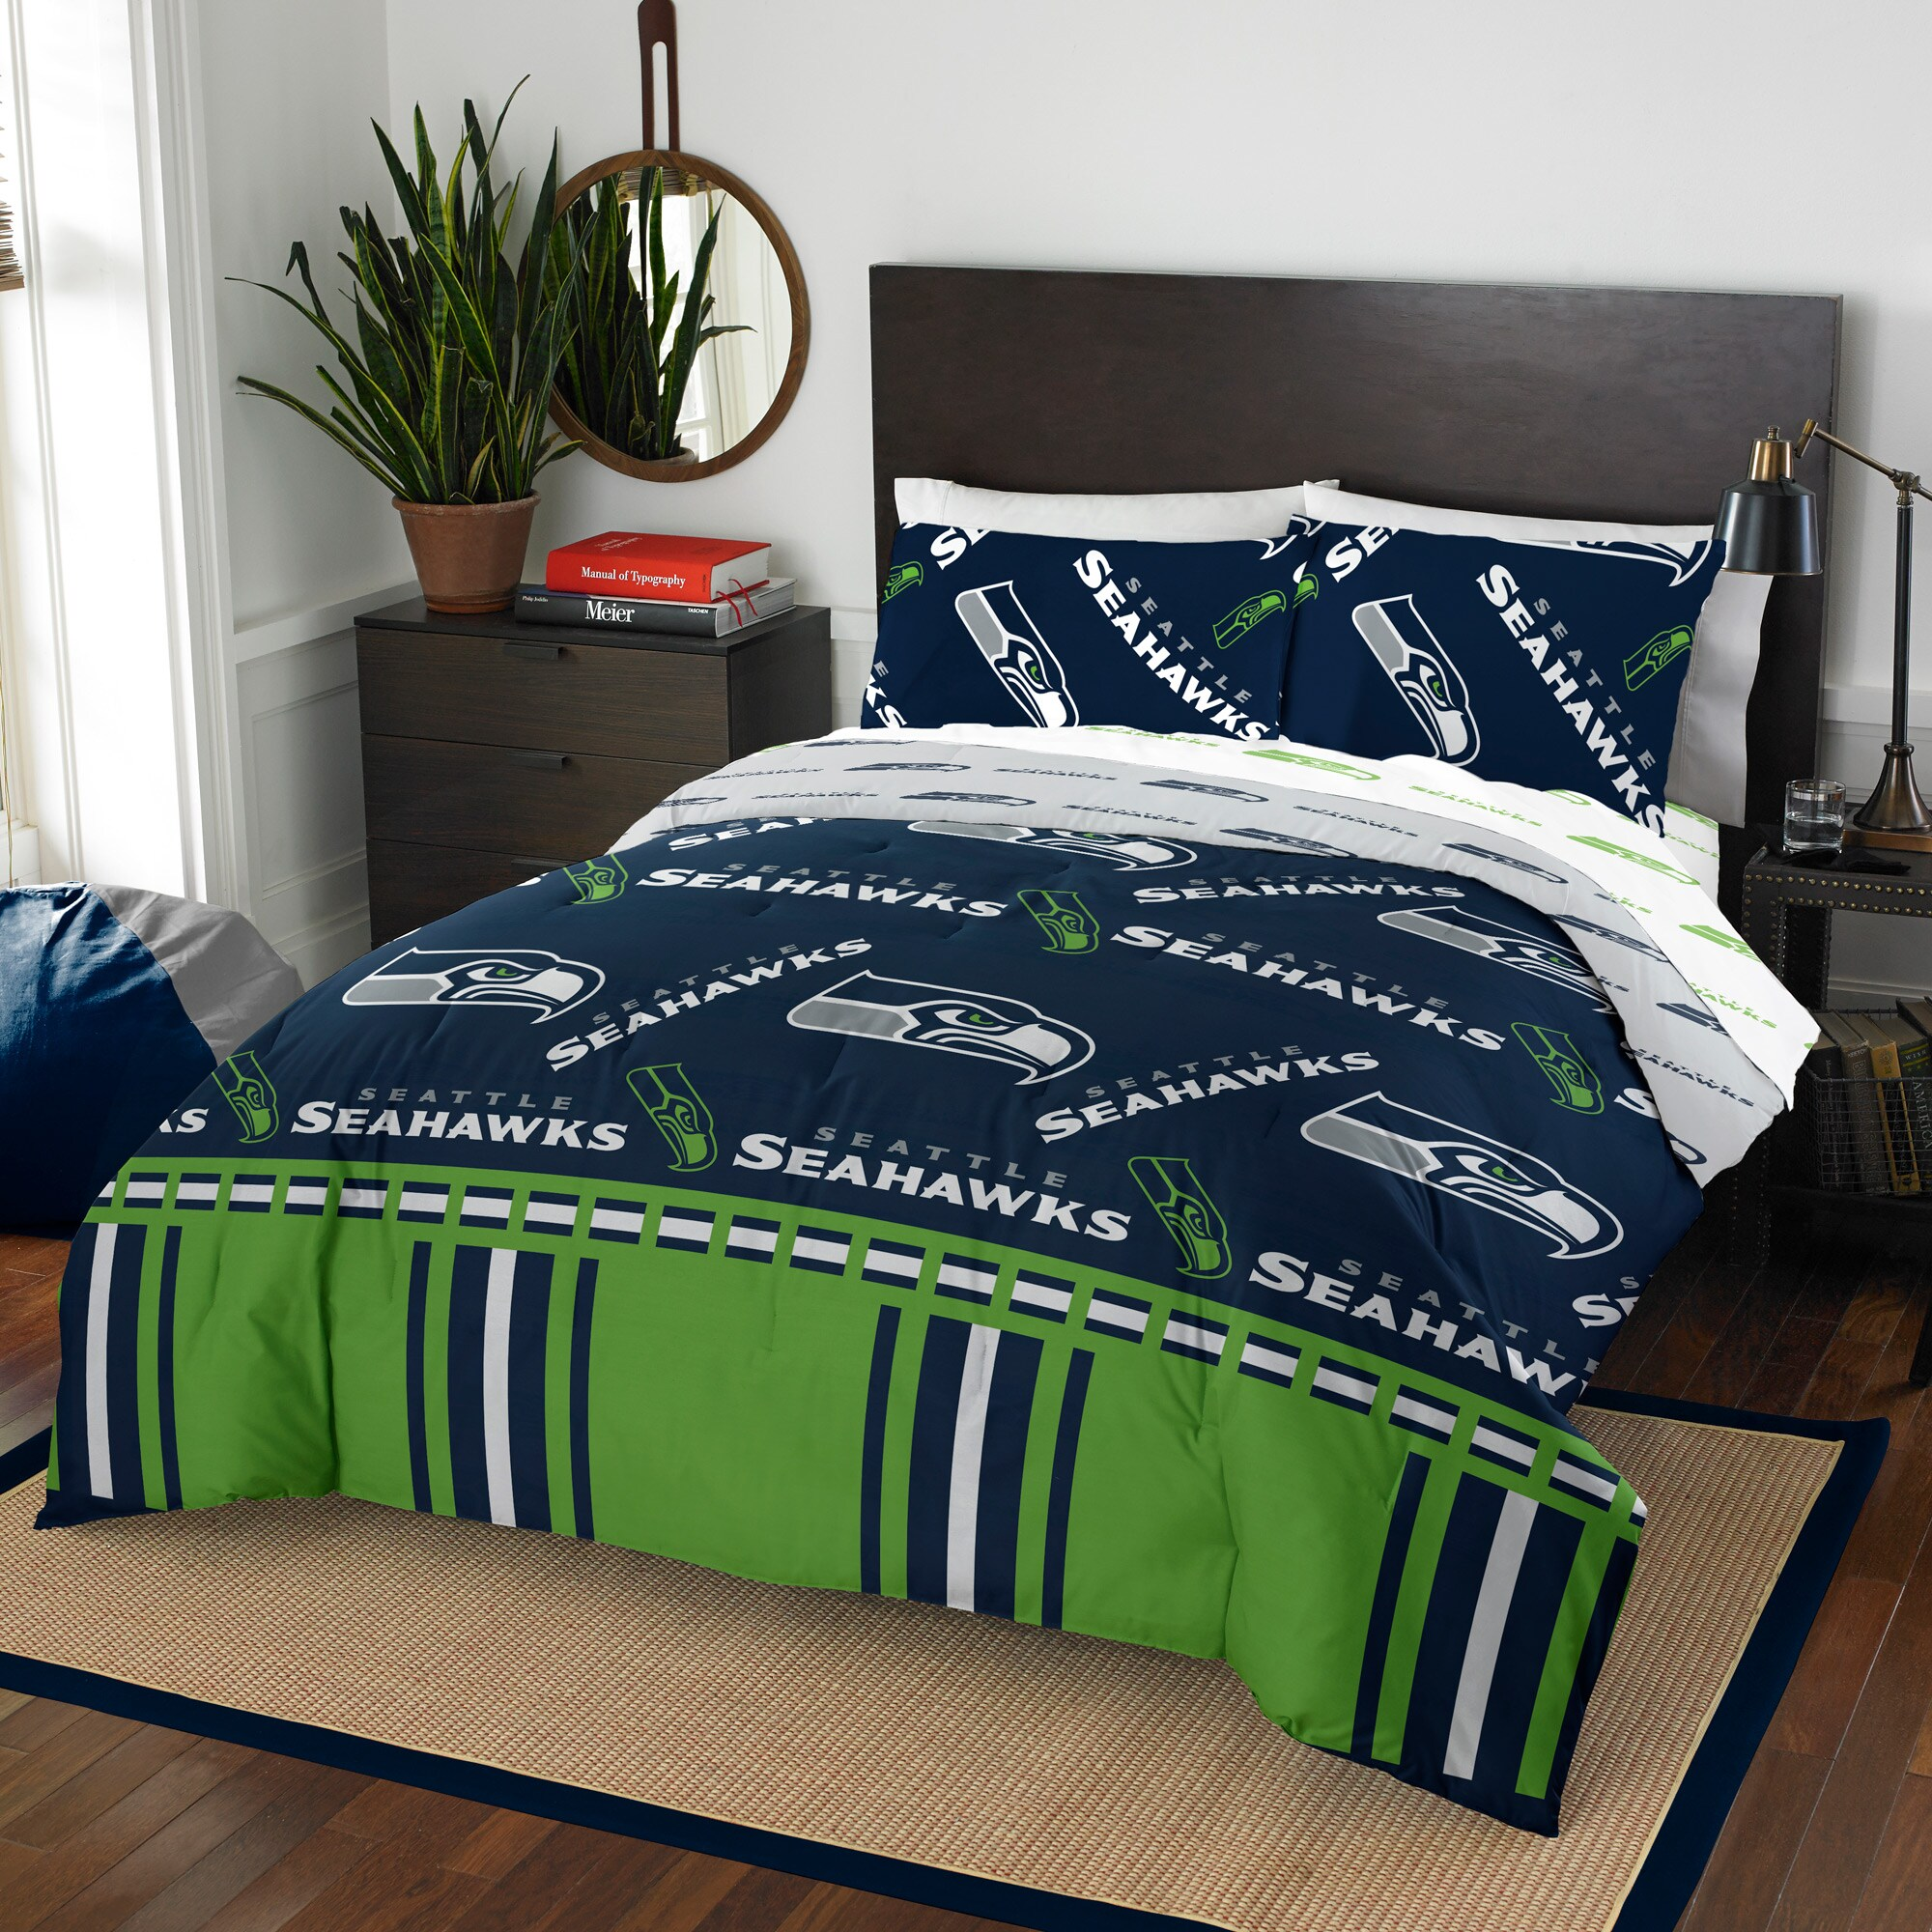 Seattle Seahawks The Northwest Company 5-Piece Full Bed in a Bag Set